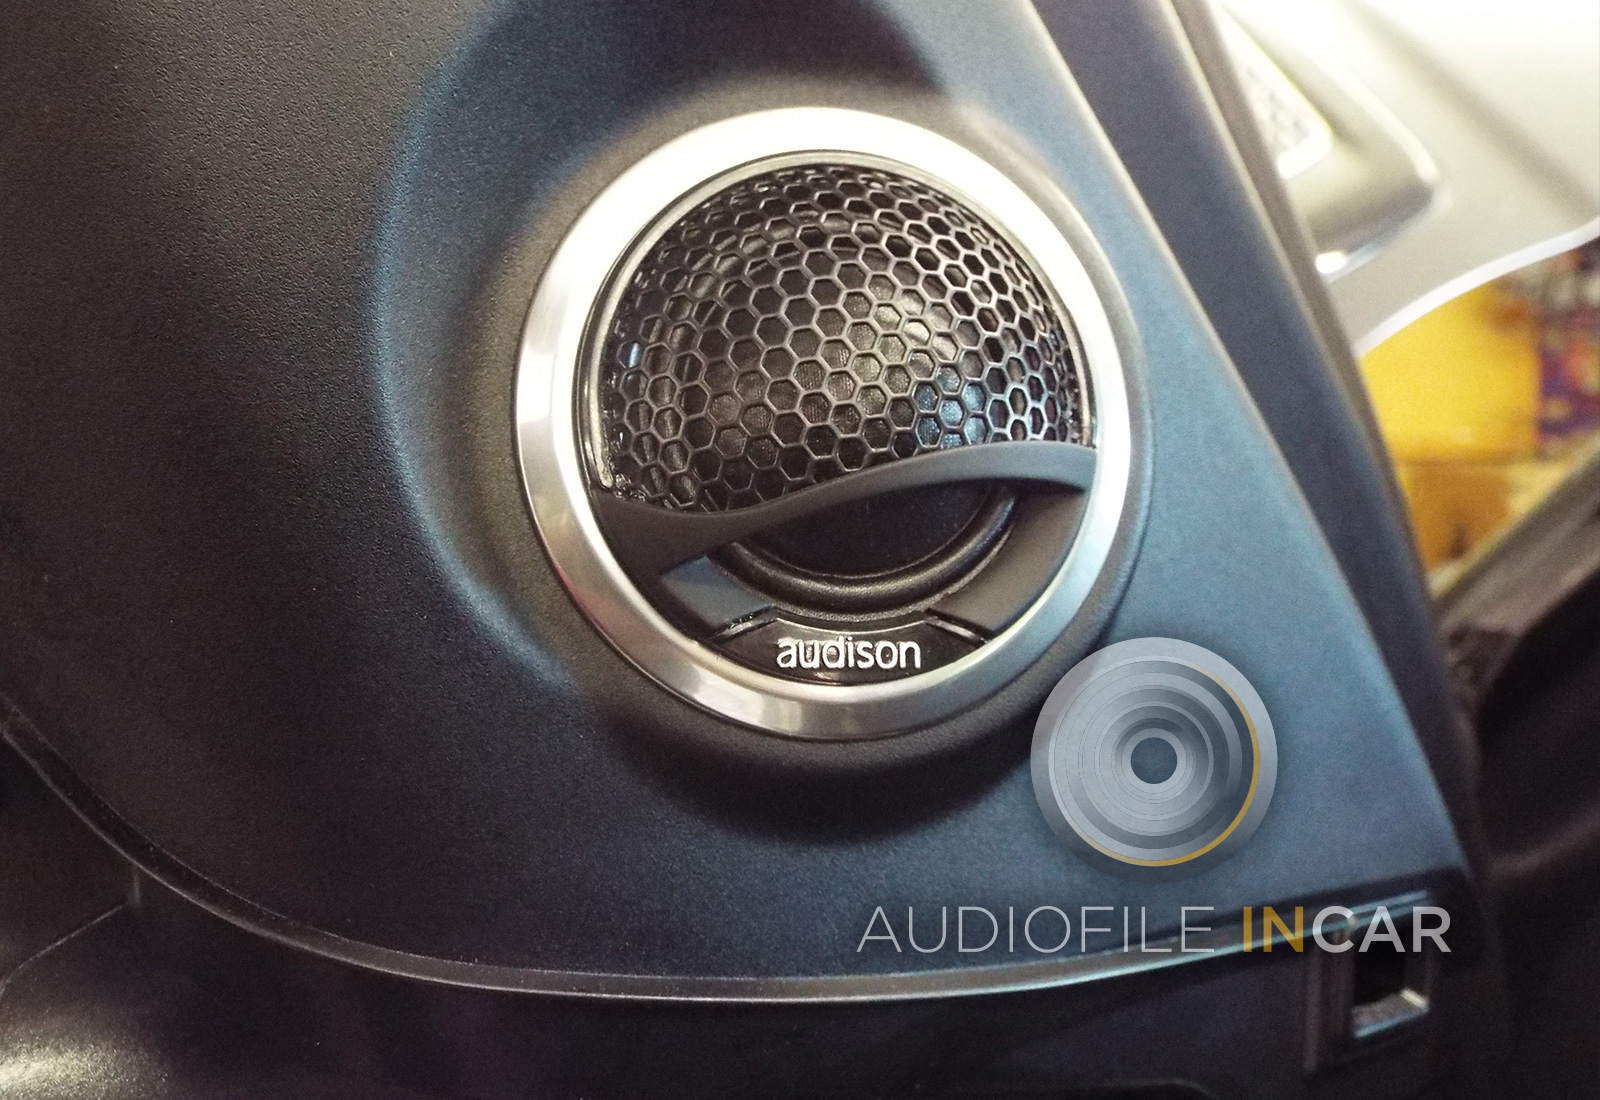 This shows an image of the Audison Voce tweeter installed beautifully into the quarter trim, this is the only visible sign that we have upgraded the audio system.